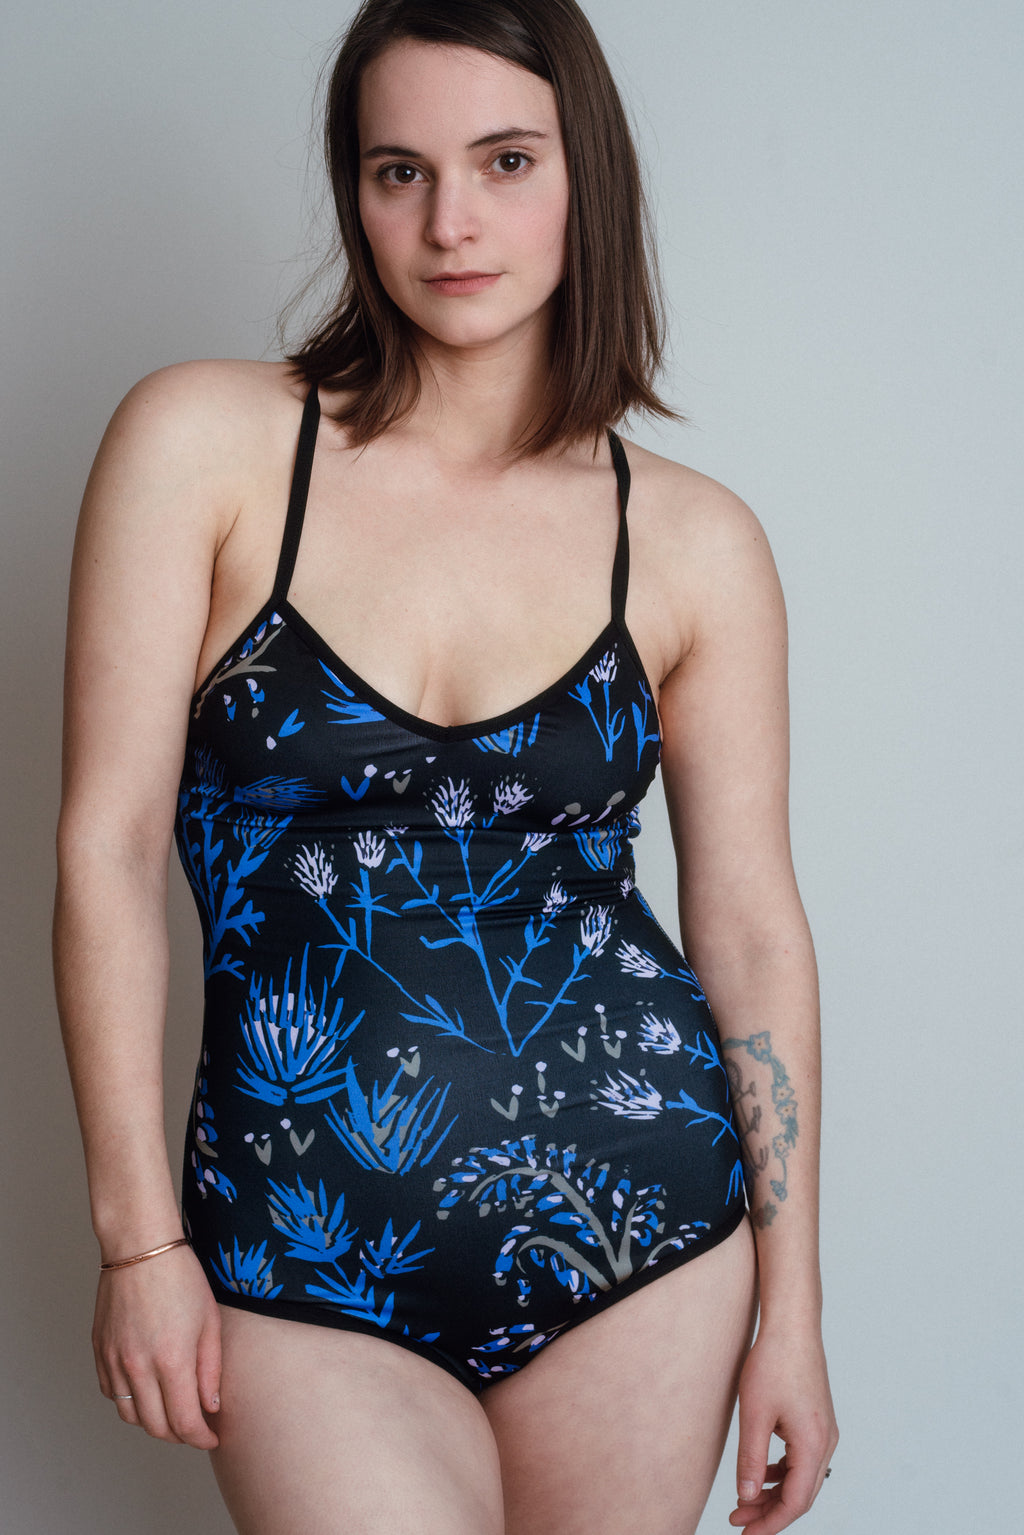 Our plus size swim wear is here for all of your bathing suit needs. Offered in extended sizes and beautiful patterns, made by hand in North America. Hand printed one pieces and two pieces with adjustable straps and eco friendly fabric.